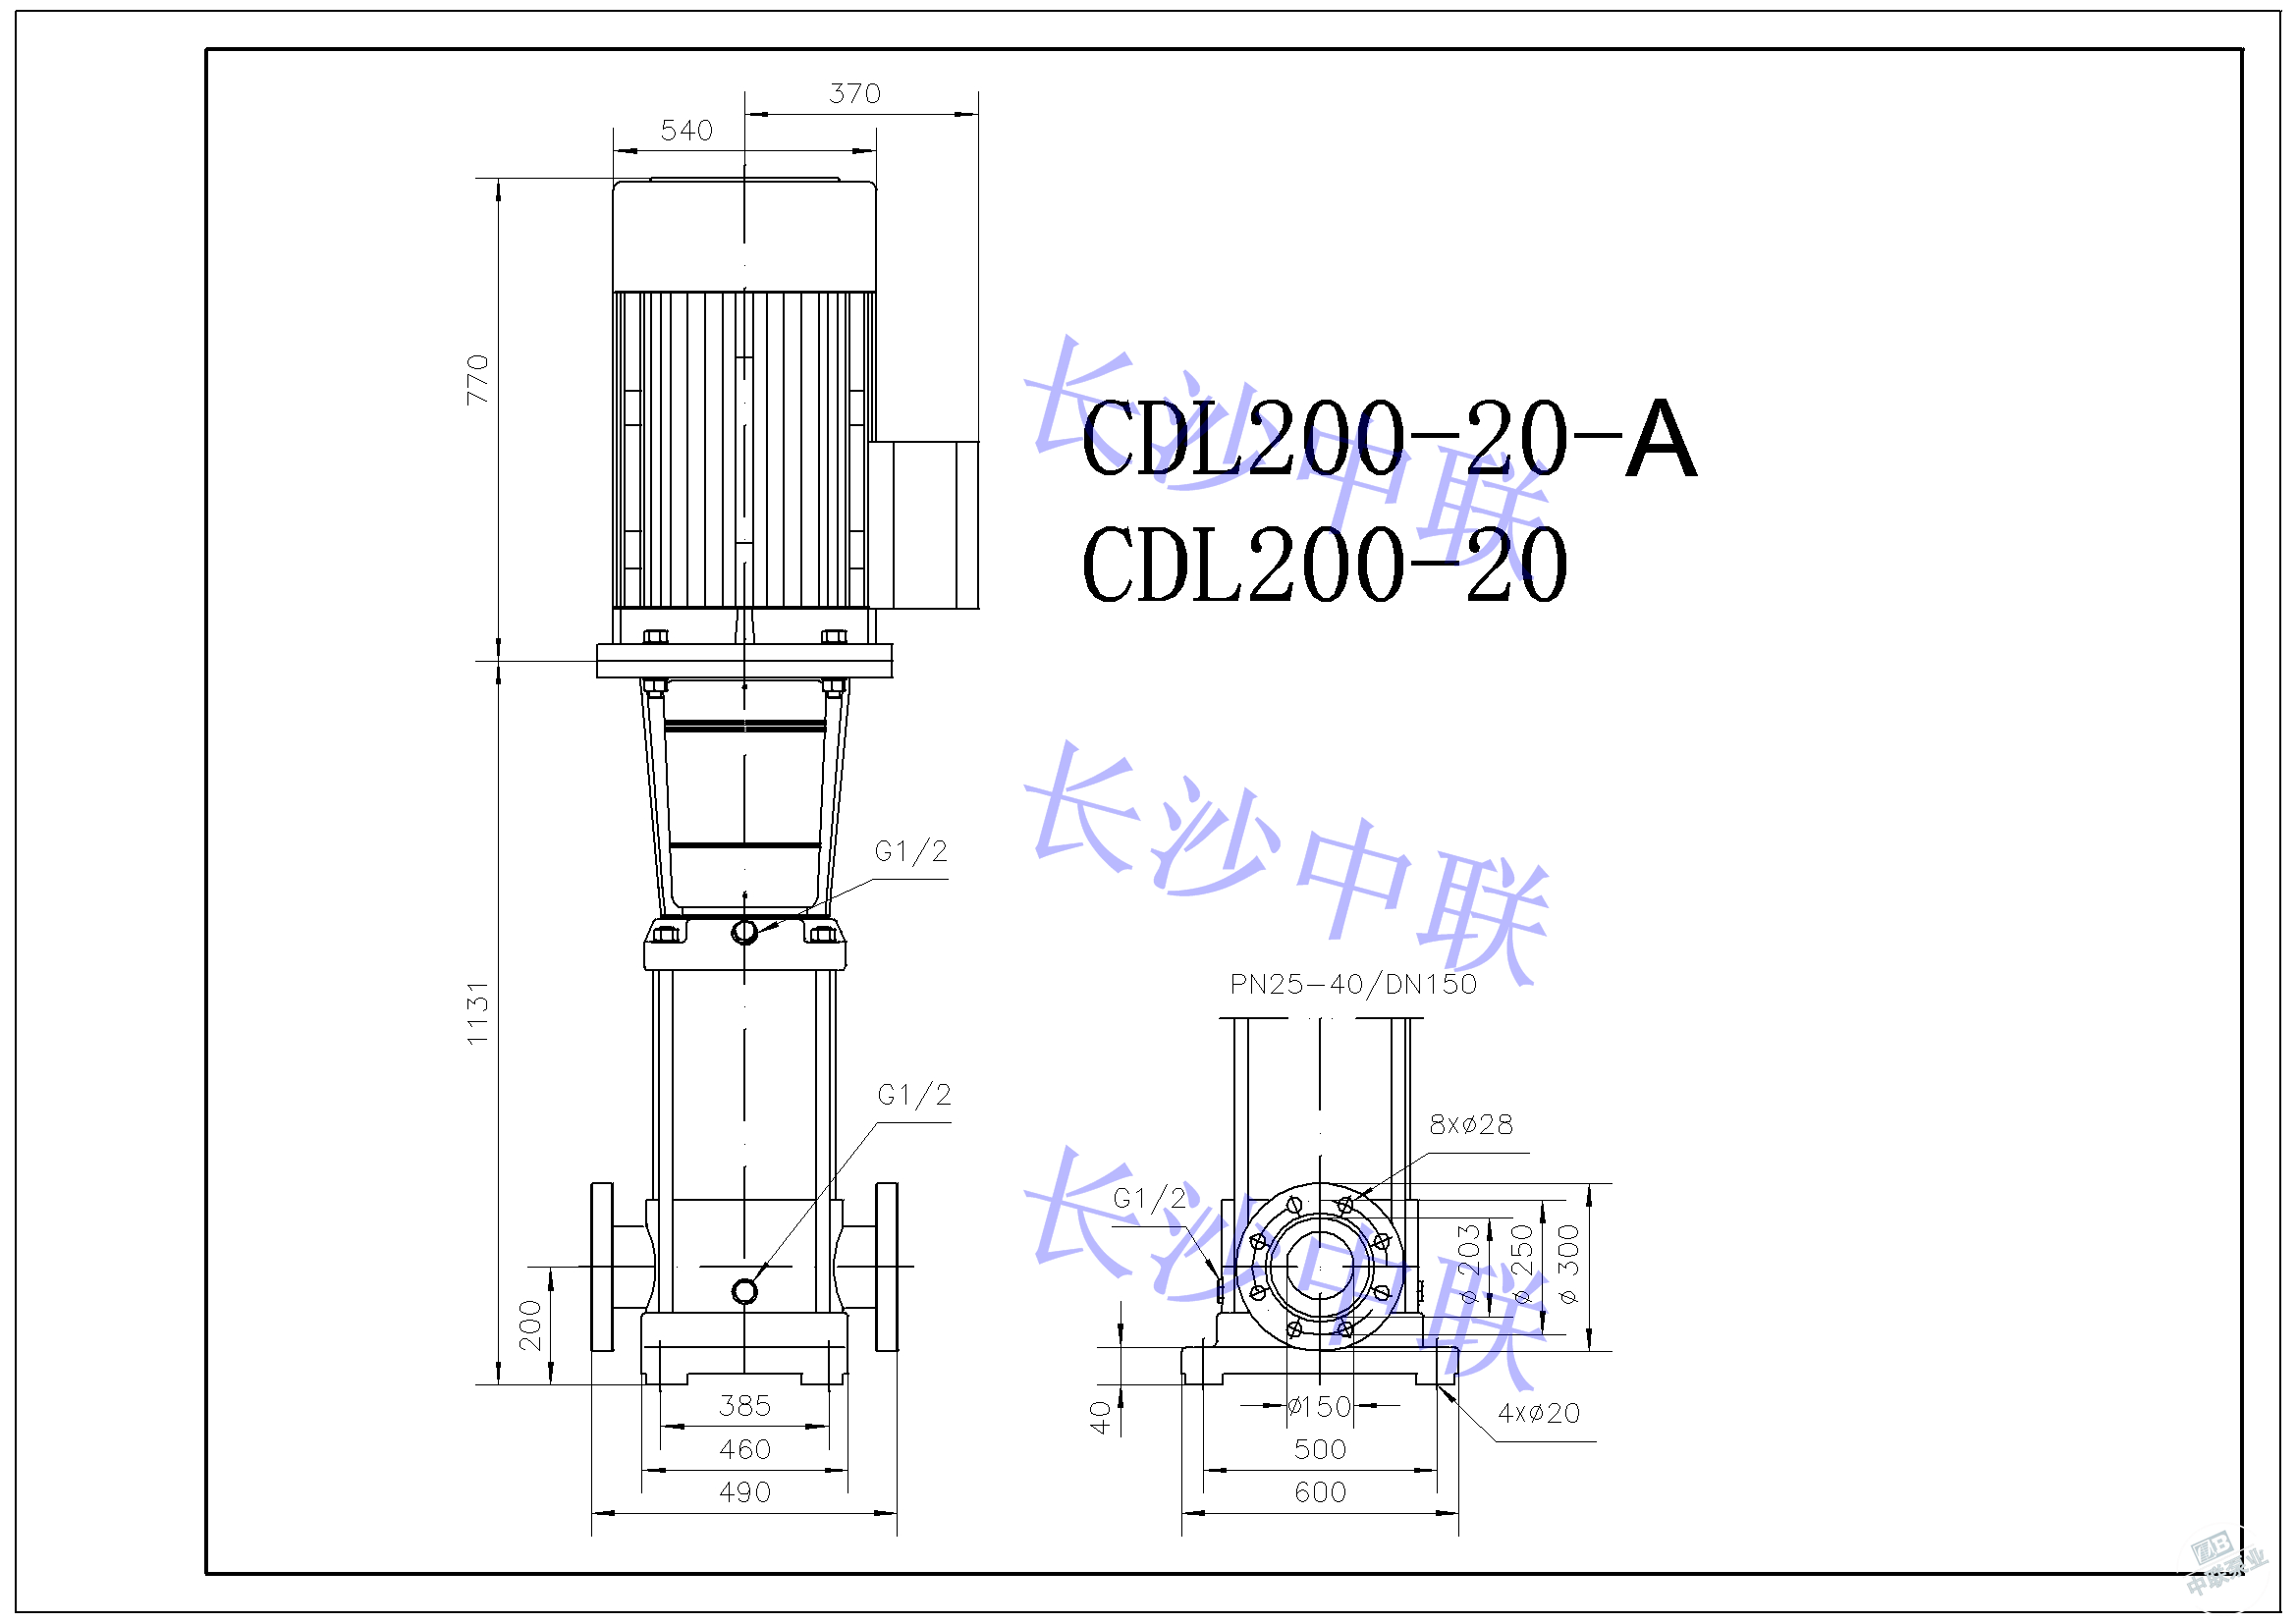 CDL200-20-A multi-stage pump installation drawing